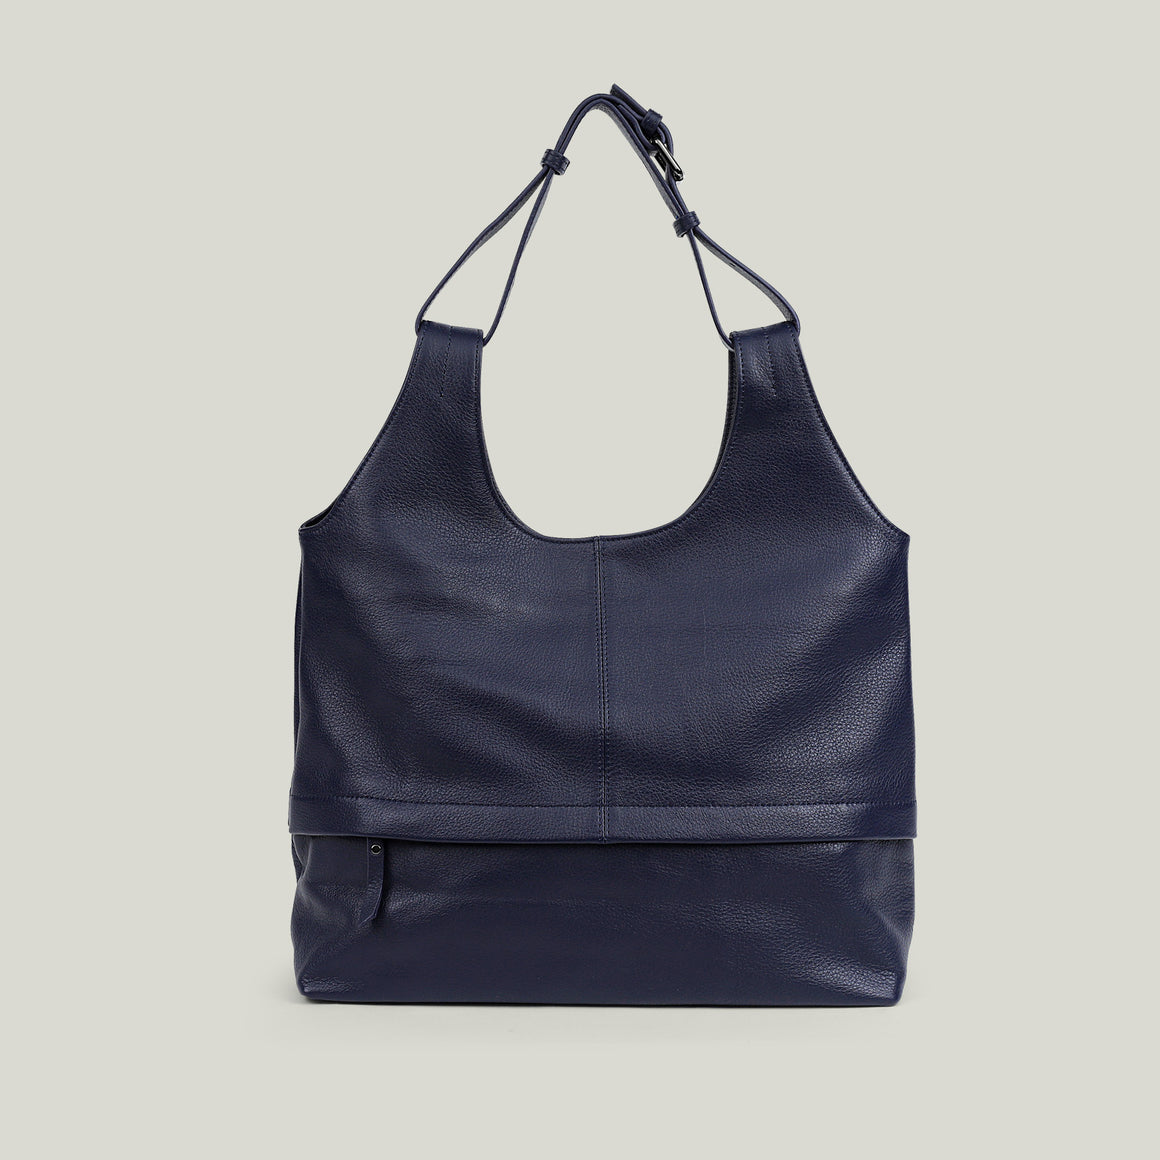 Leather Hobo Bag, Sober Simplicity navy blue